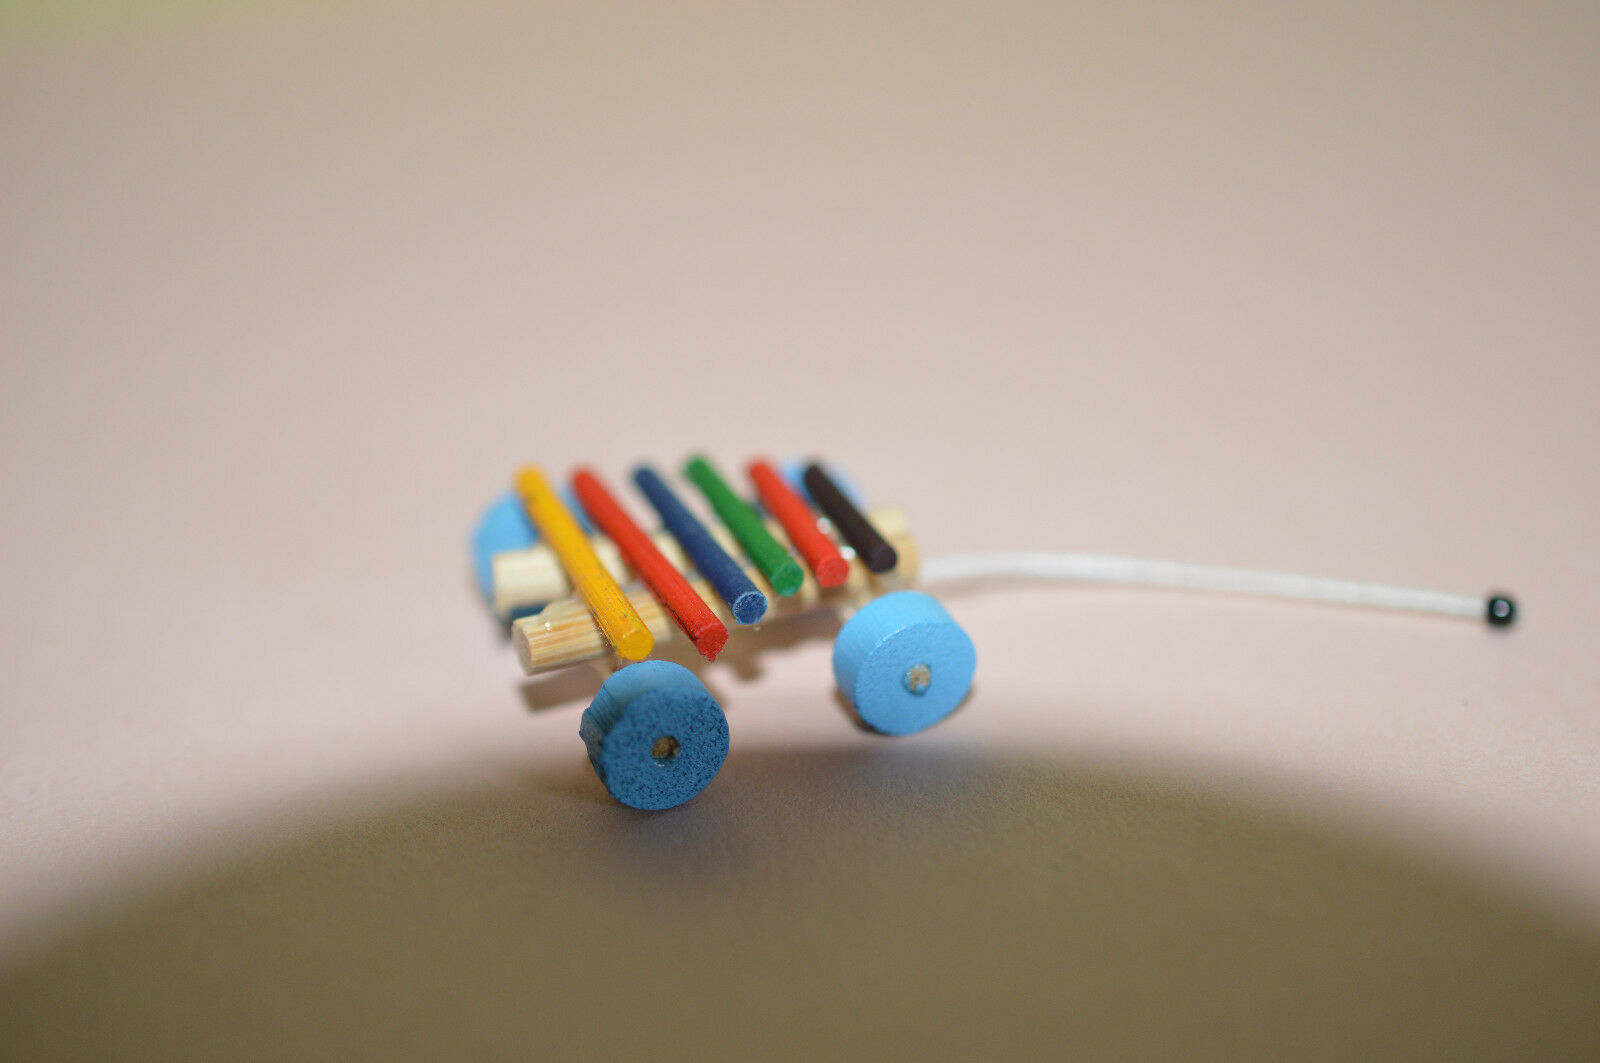 Cute 1:12 Scale Dollhouse Miniature Xylophone Childrens Toy NEW #IM65378